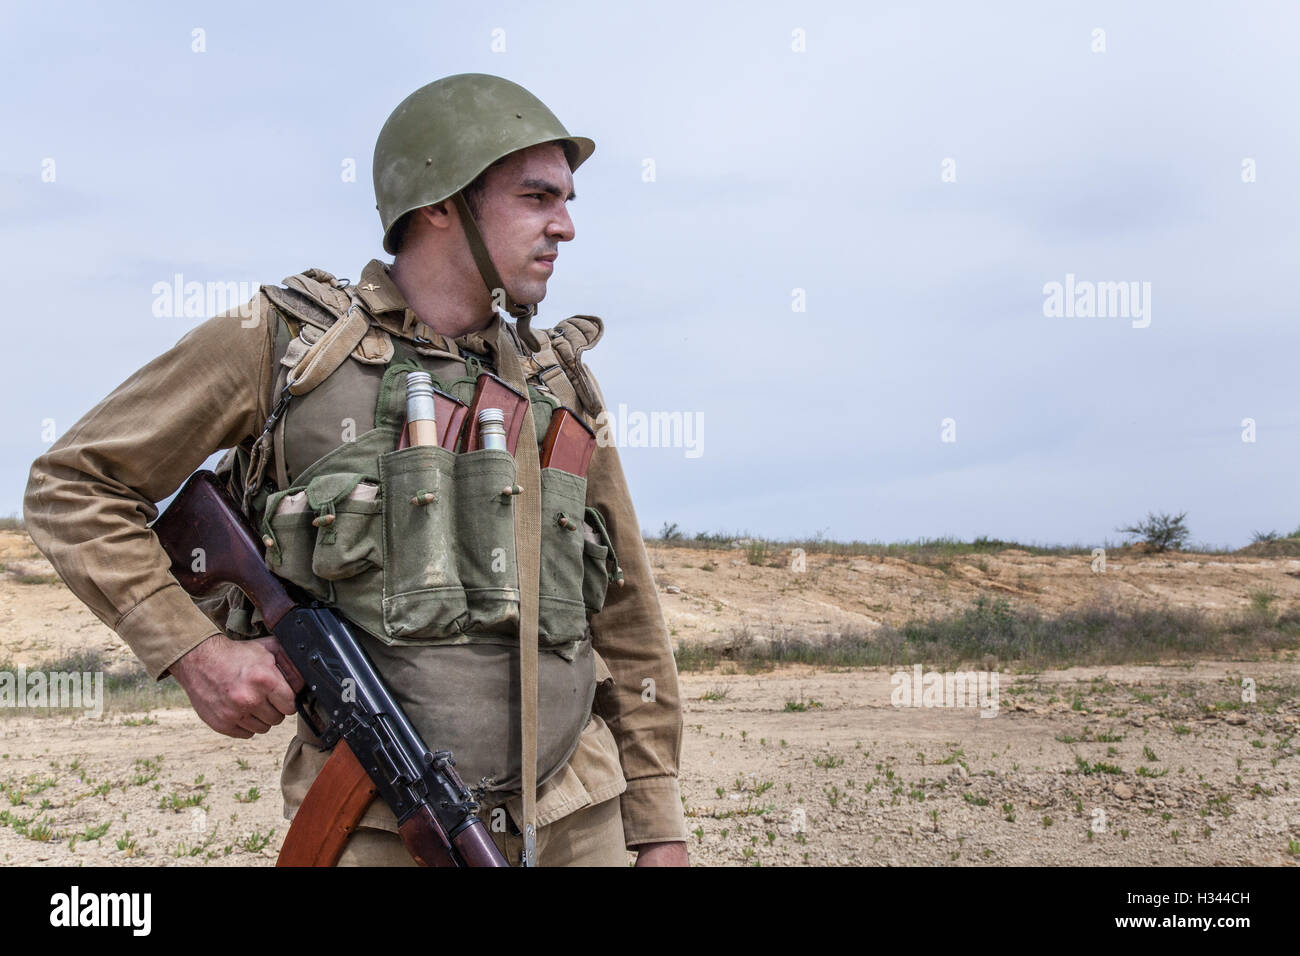 Soviet Afghanistan war - Page 6 Soviet-paratrooper-in-afghanistan-H344CH